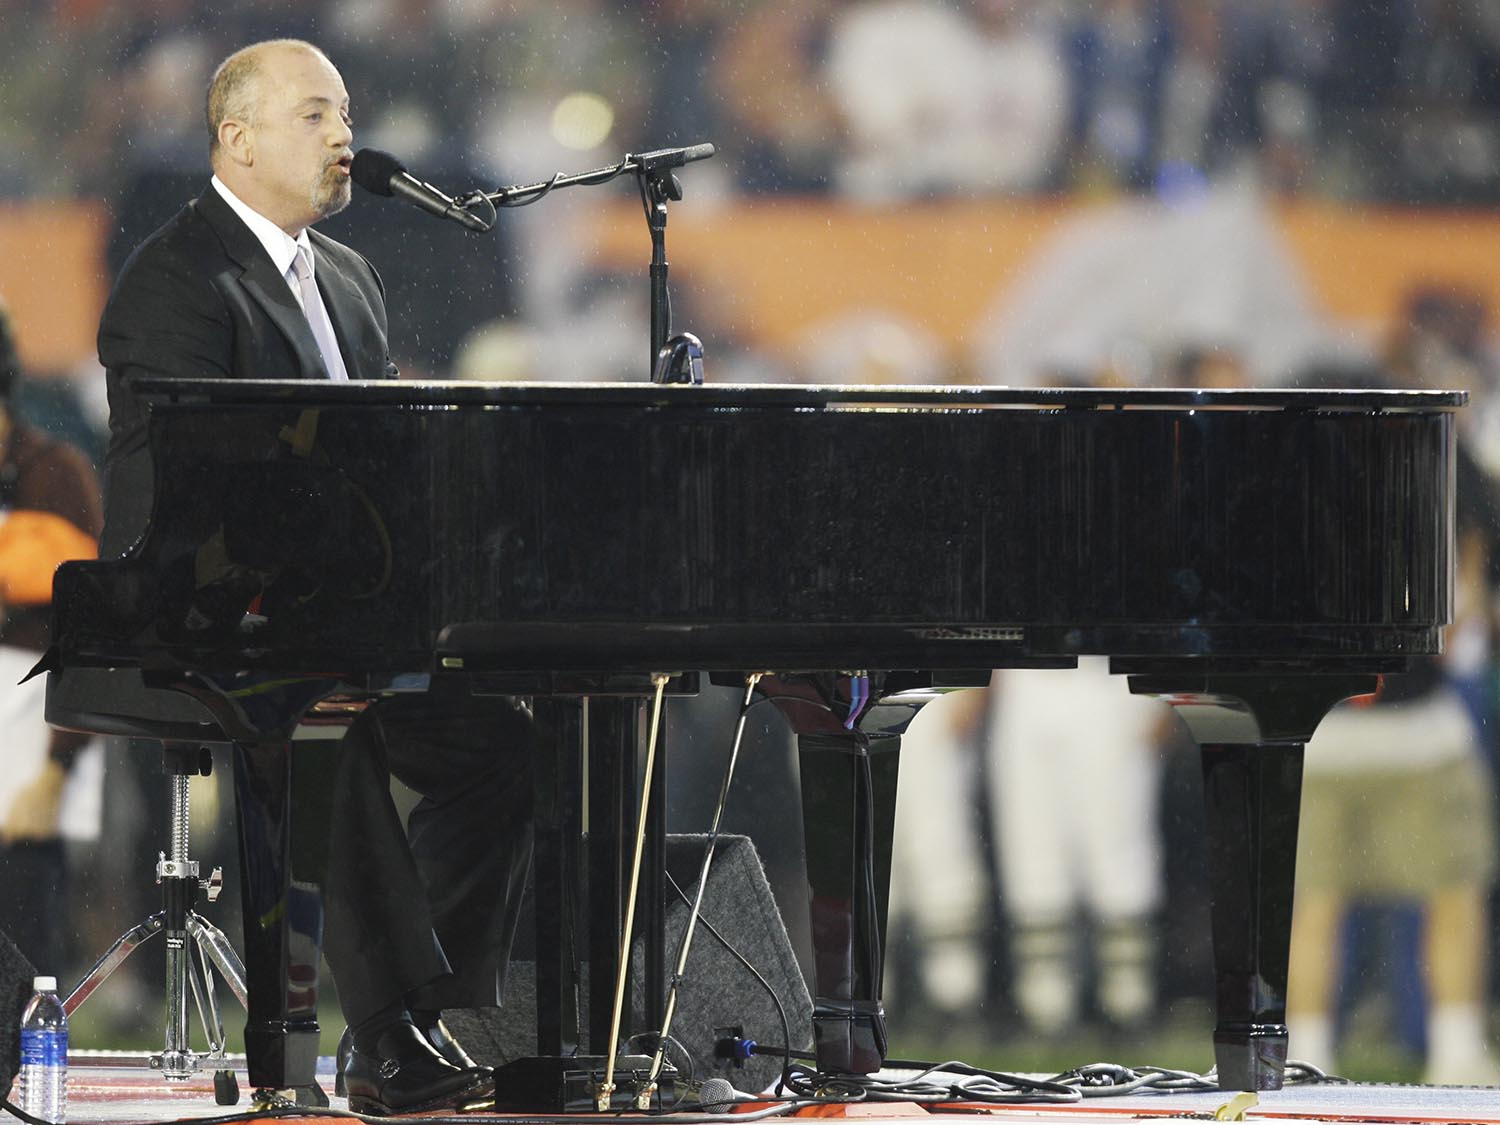 "<div class=""meta image-caption""><div class=""origin-logo origin-image ap""><span>AP</span></div><span class=""caption-text"">2007: Billy Joel sings the national anthem prior to the Super Bowl XLI football game at Dolphin Stadium in Miami on Sunday, Feb. 4, 2007. (AP Photo/Alex Brandon)</span></div>"